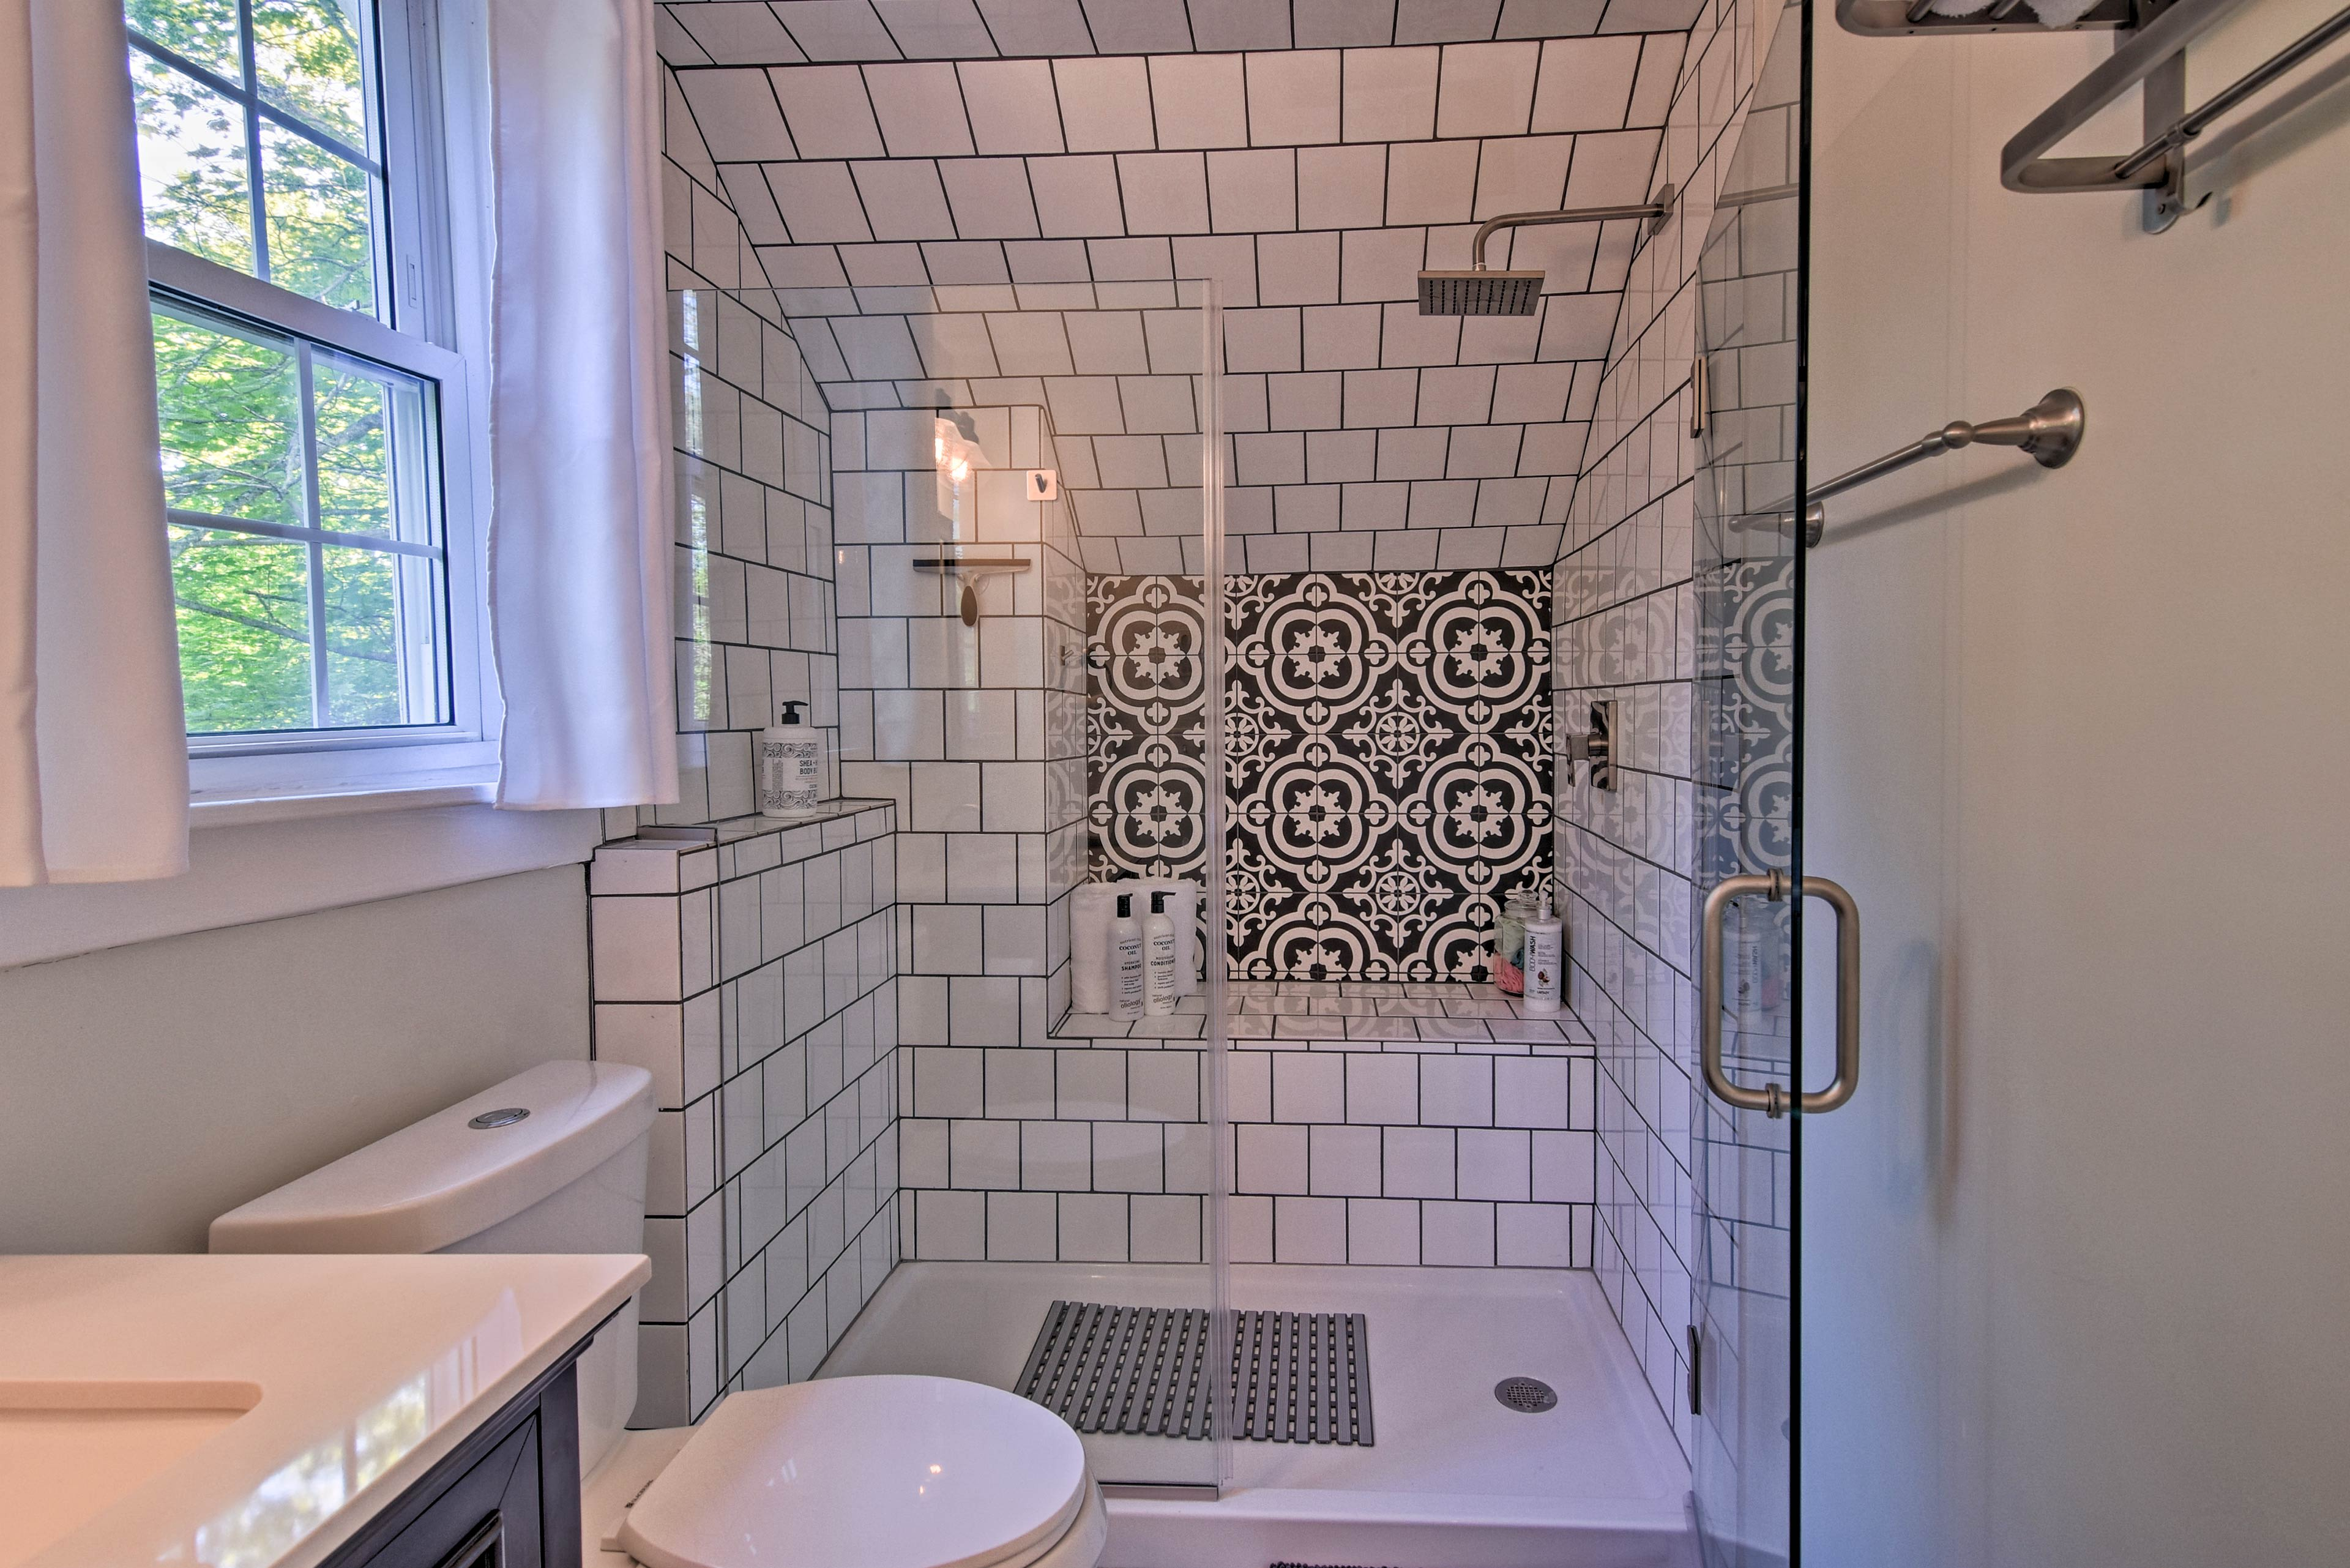 Rinse off in the spacious and decorated walk-in shower.